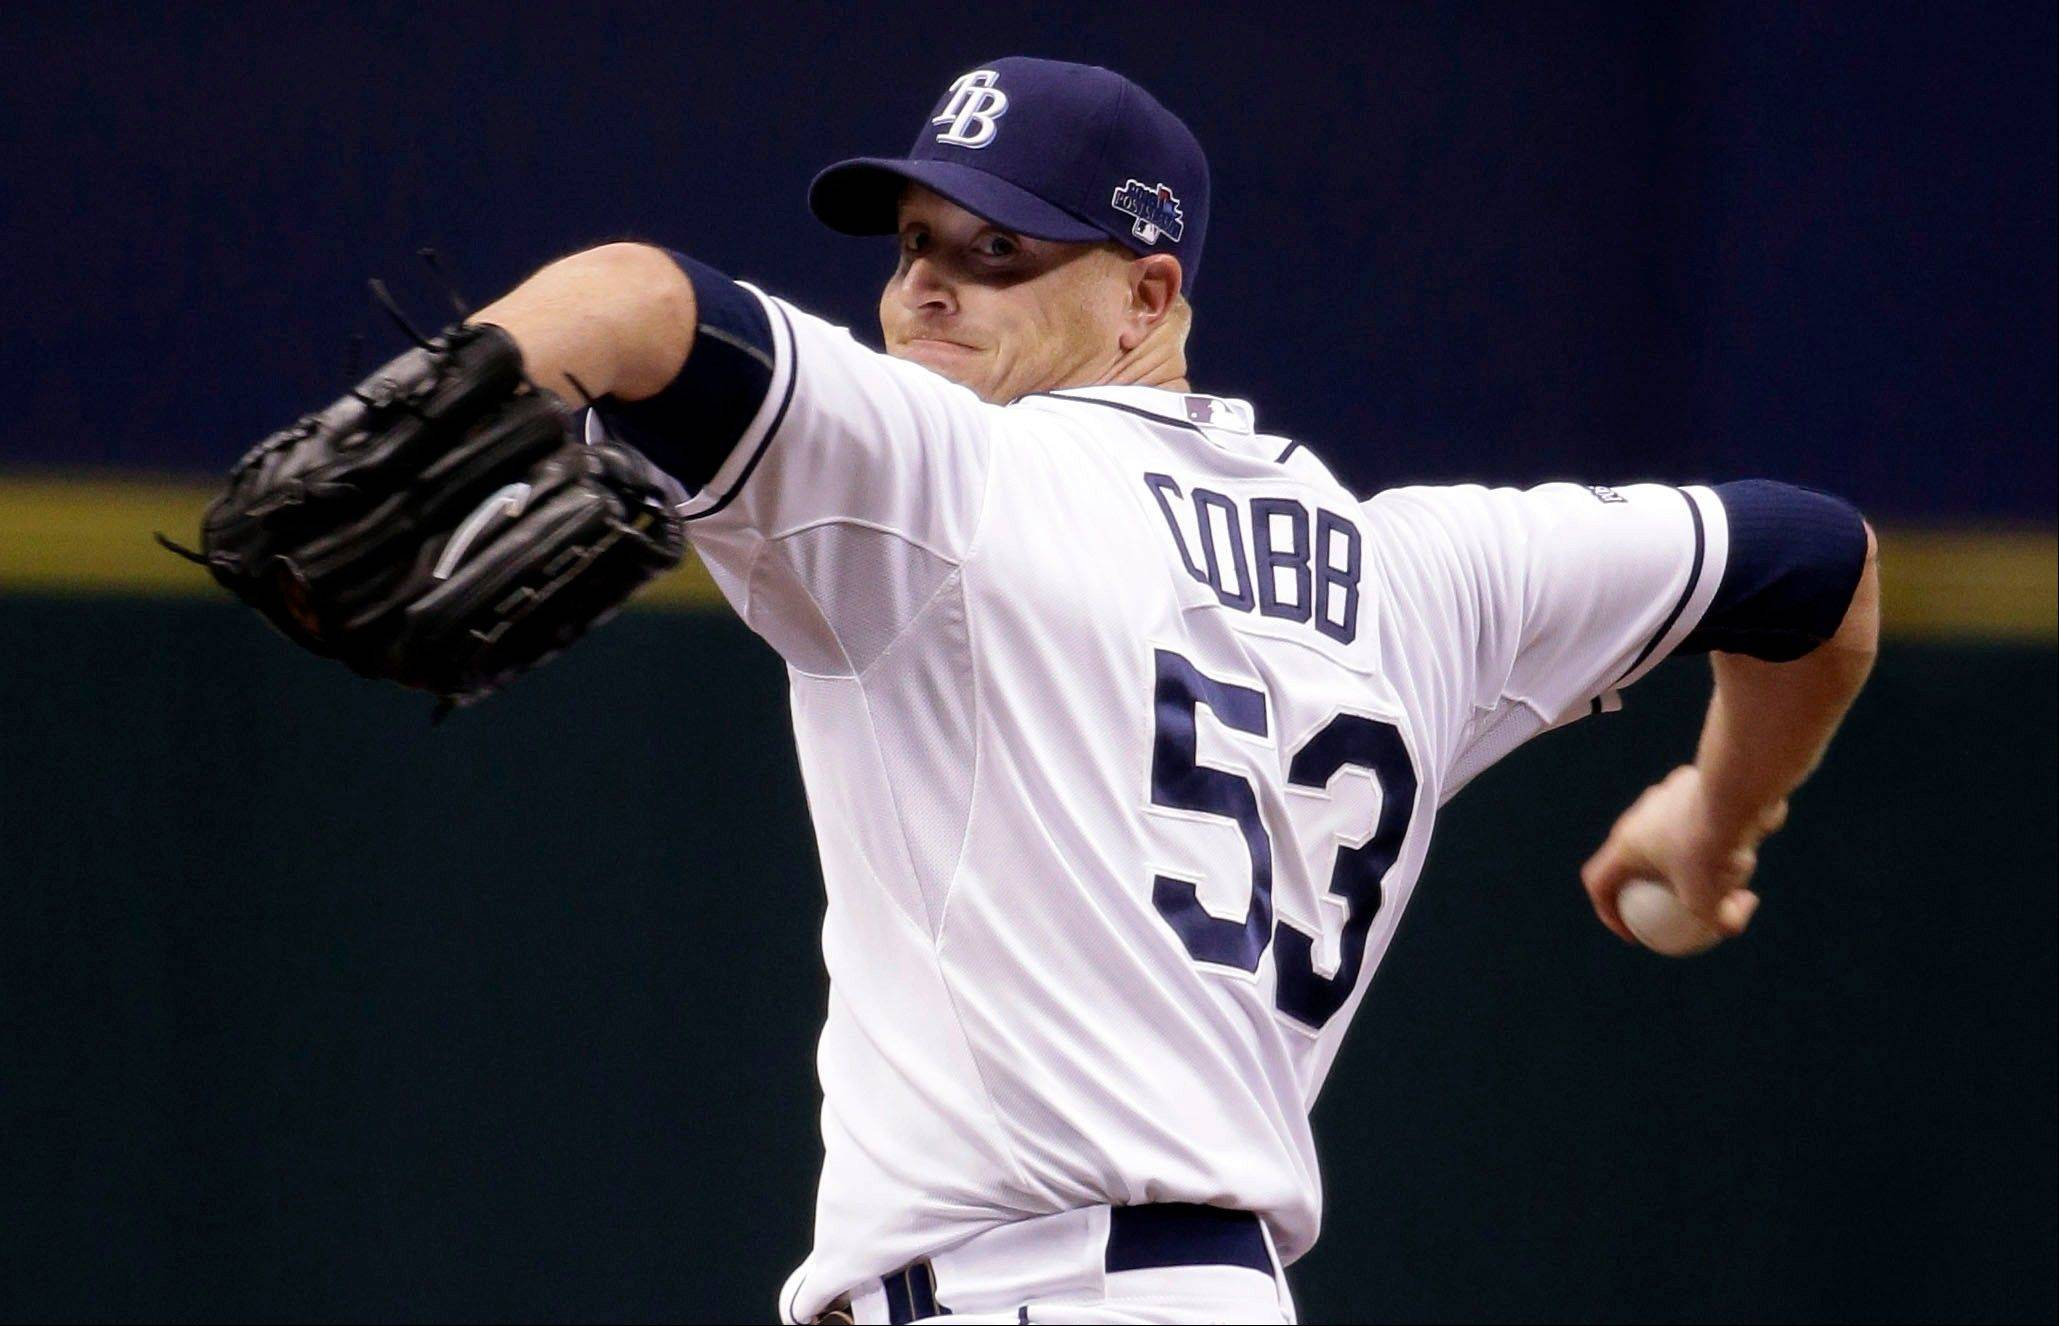 Tampa Bay Rays starting pitcher Alex Cobb throws in the first inning Monday in Game 3 of an American League Division Series against the Boston Red Sox.